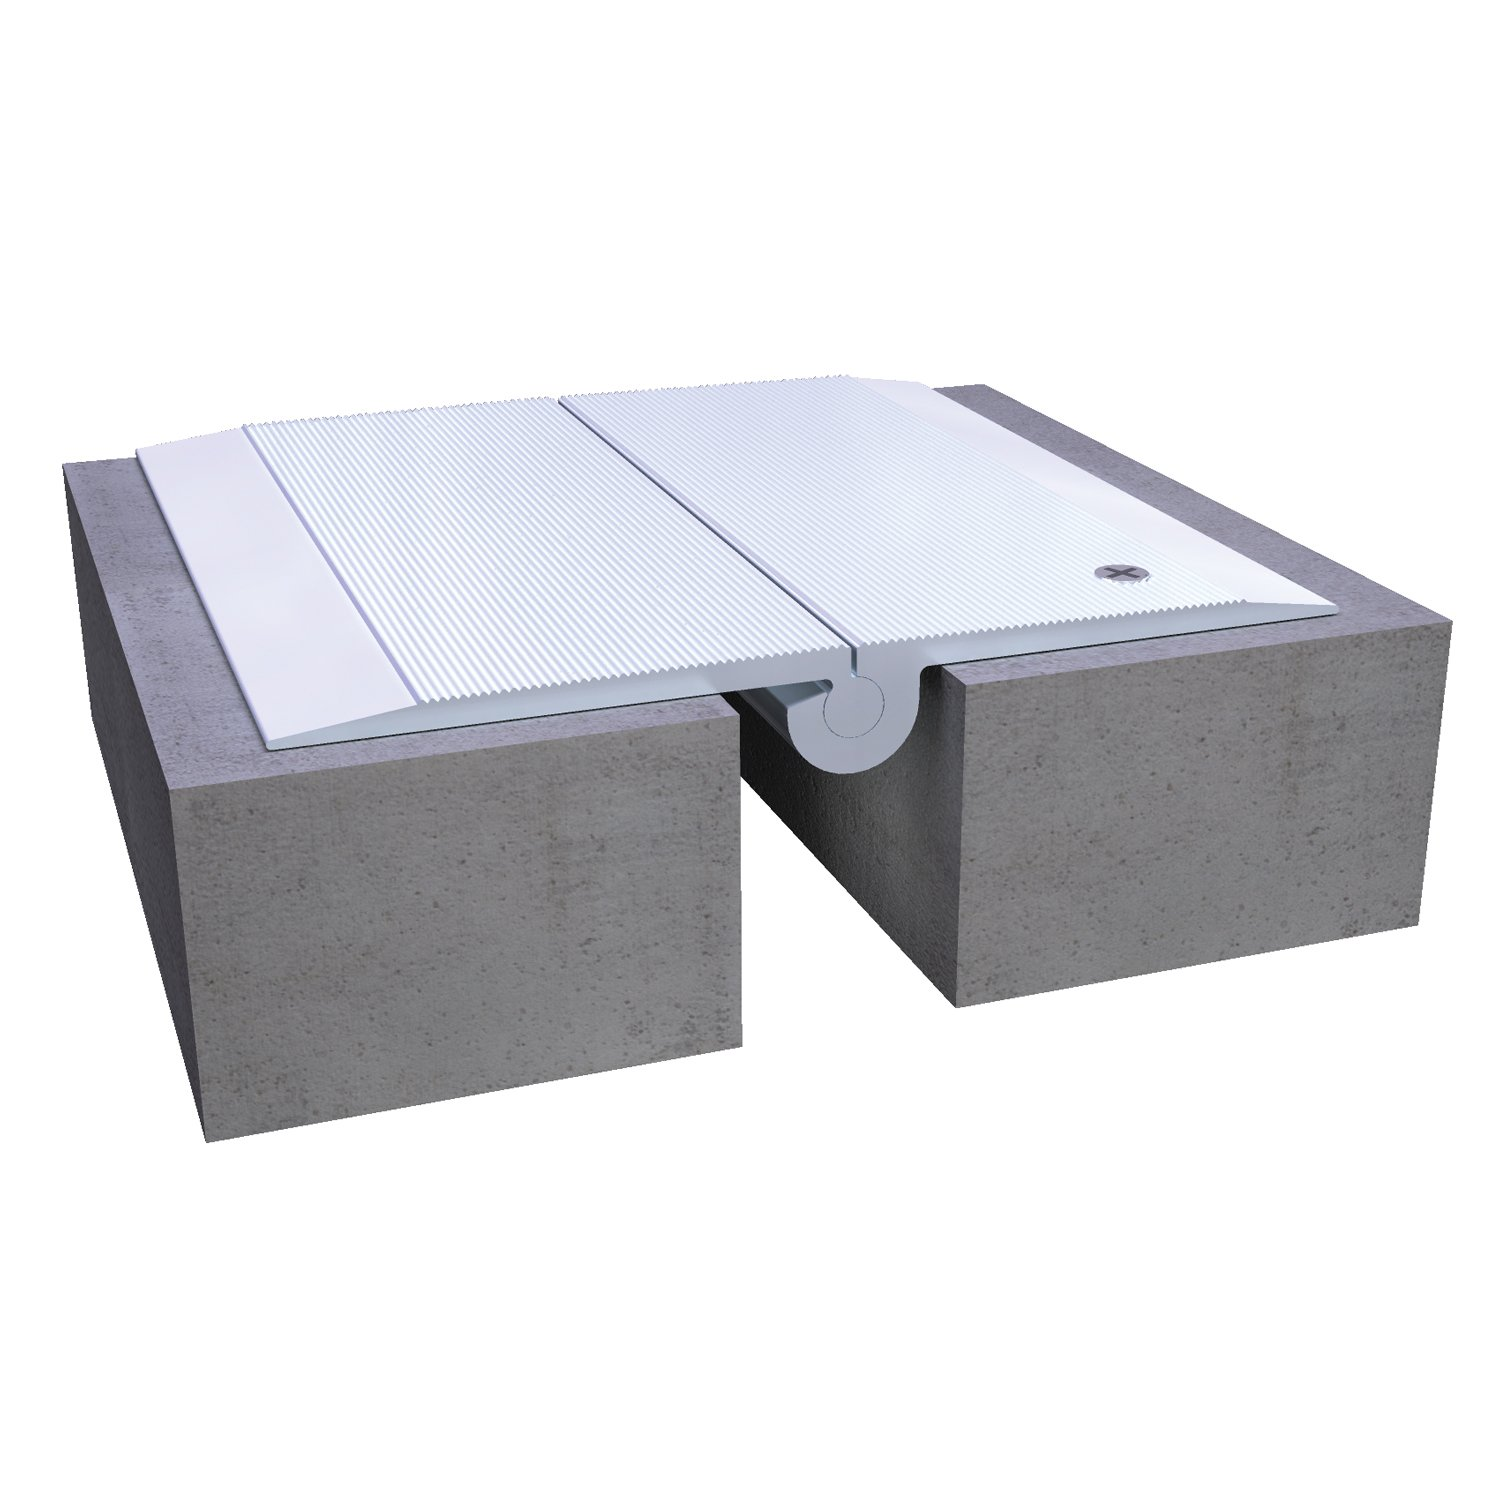 806 Series Floor System Expansion Joints